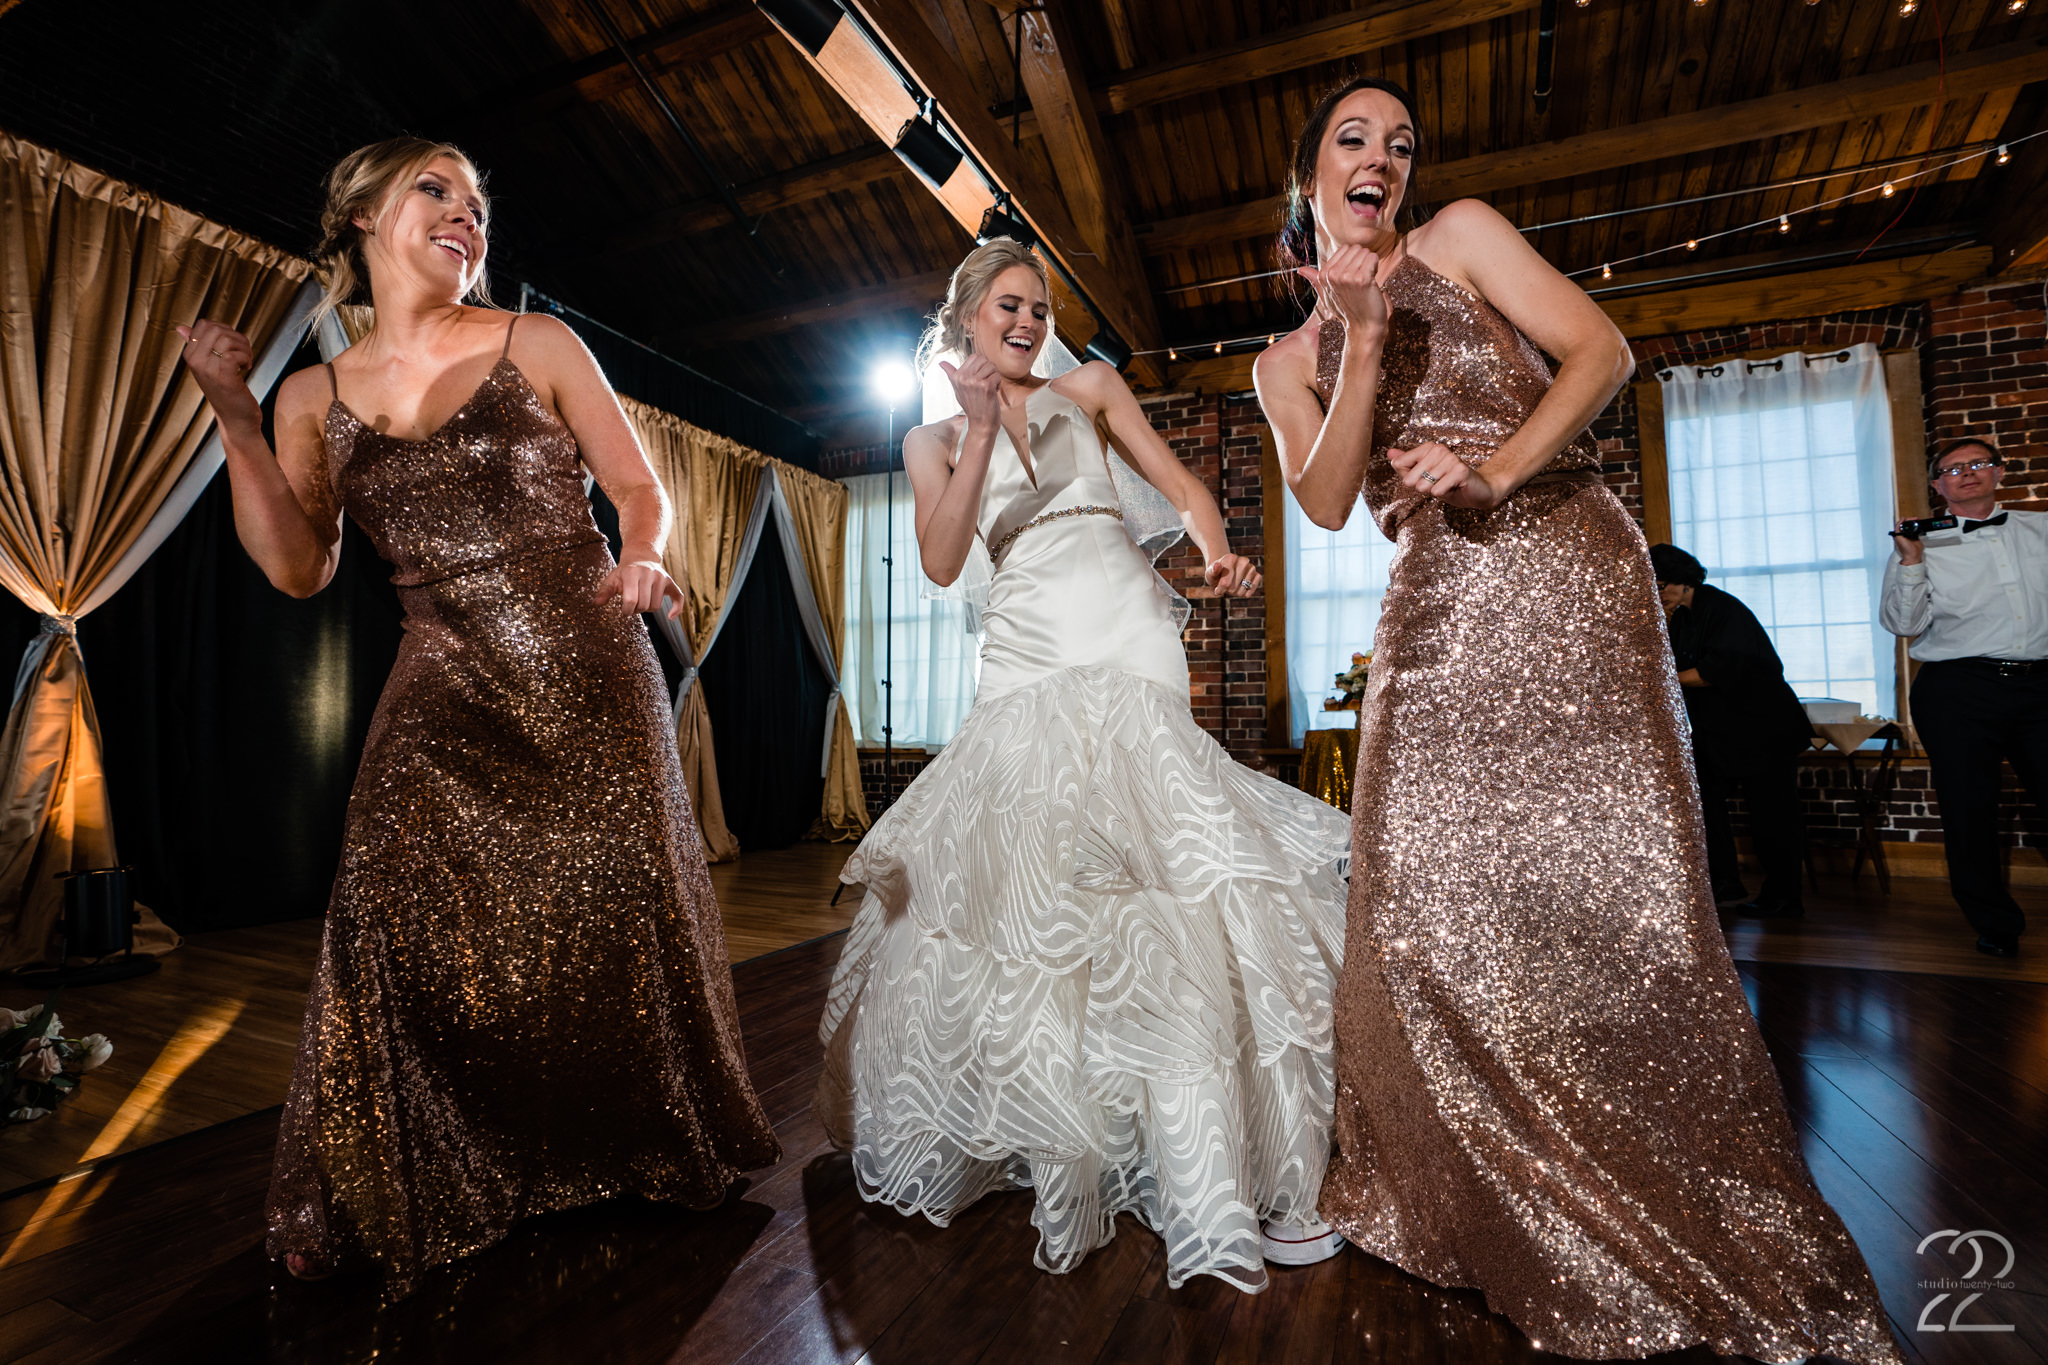 Receptions are one of the most fun things for us to shoot at a wedding. We love capturing everyone letting loose and having fun! Dillon and Corrie's reception at Top of the Market Dayton was a blast!